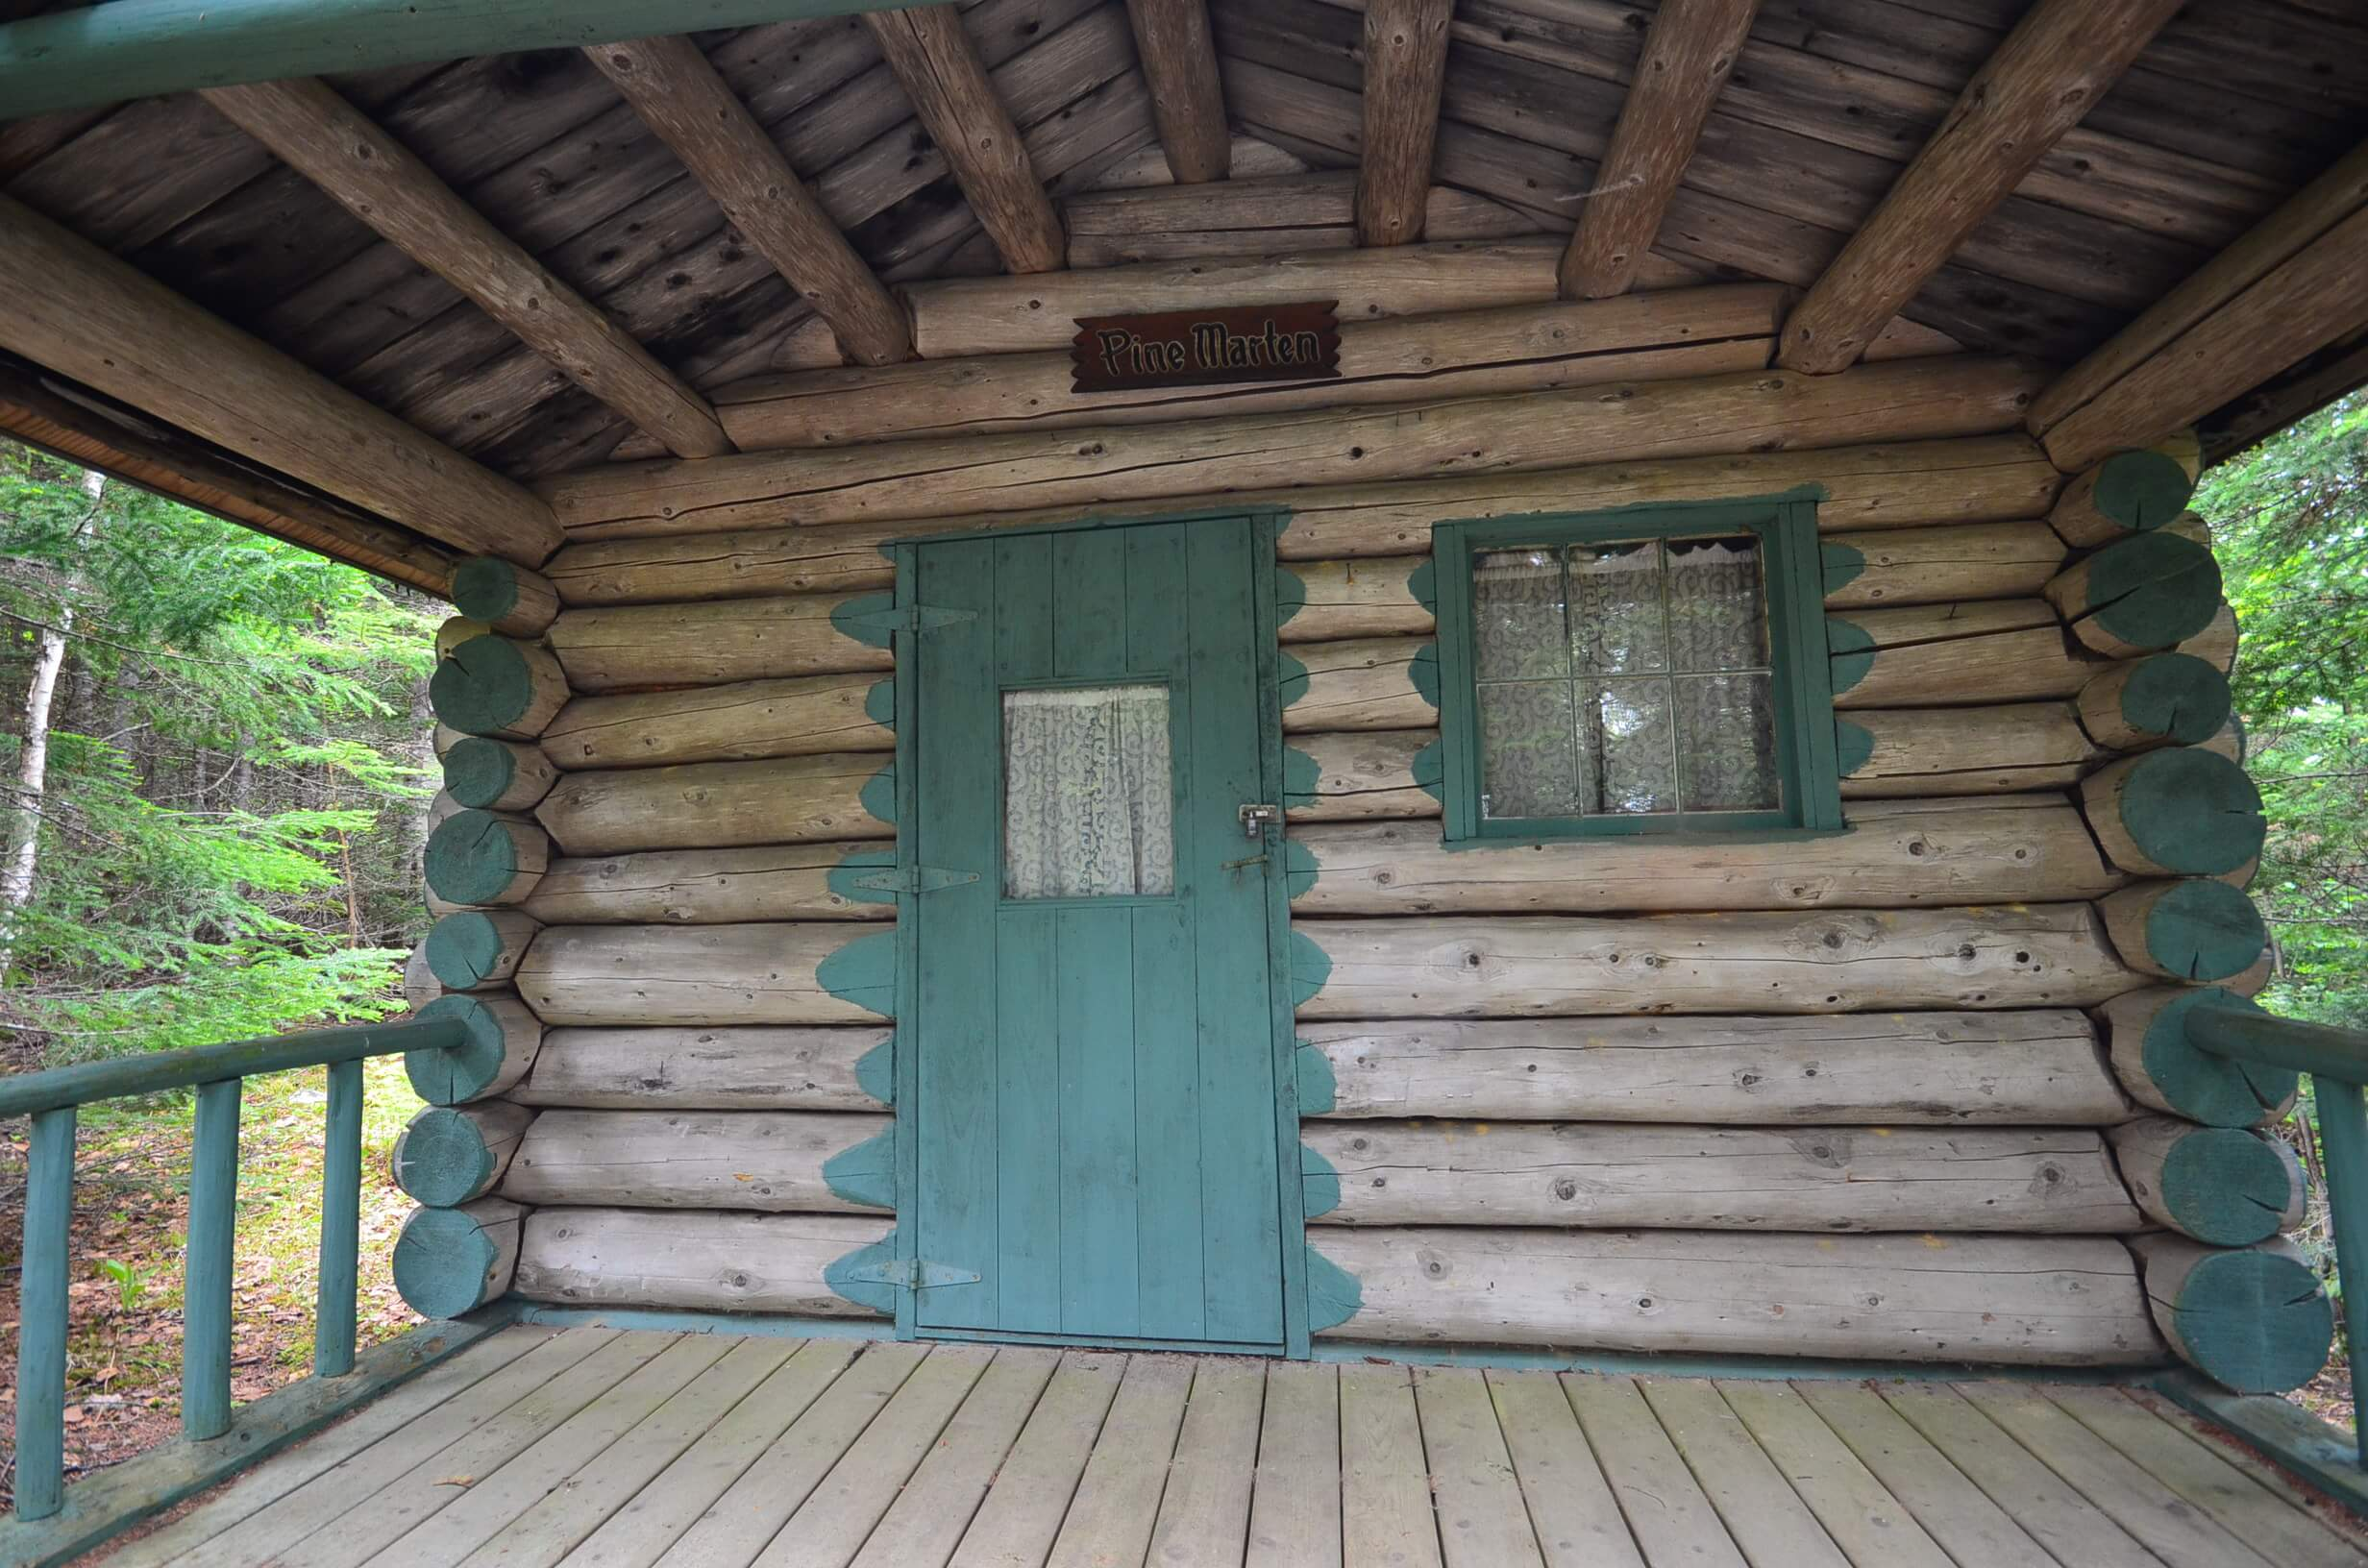 cabins kits tn rustic prices ohio maine cabin interior sale log cheap